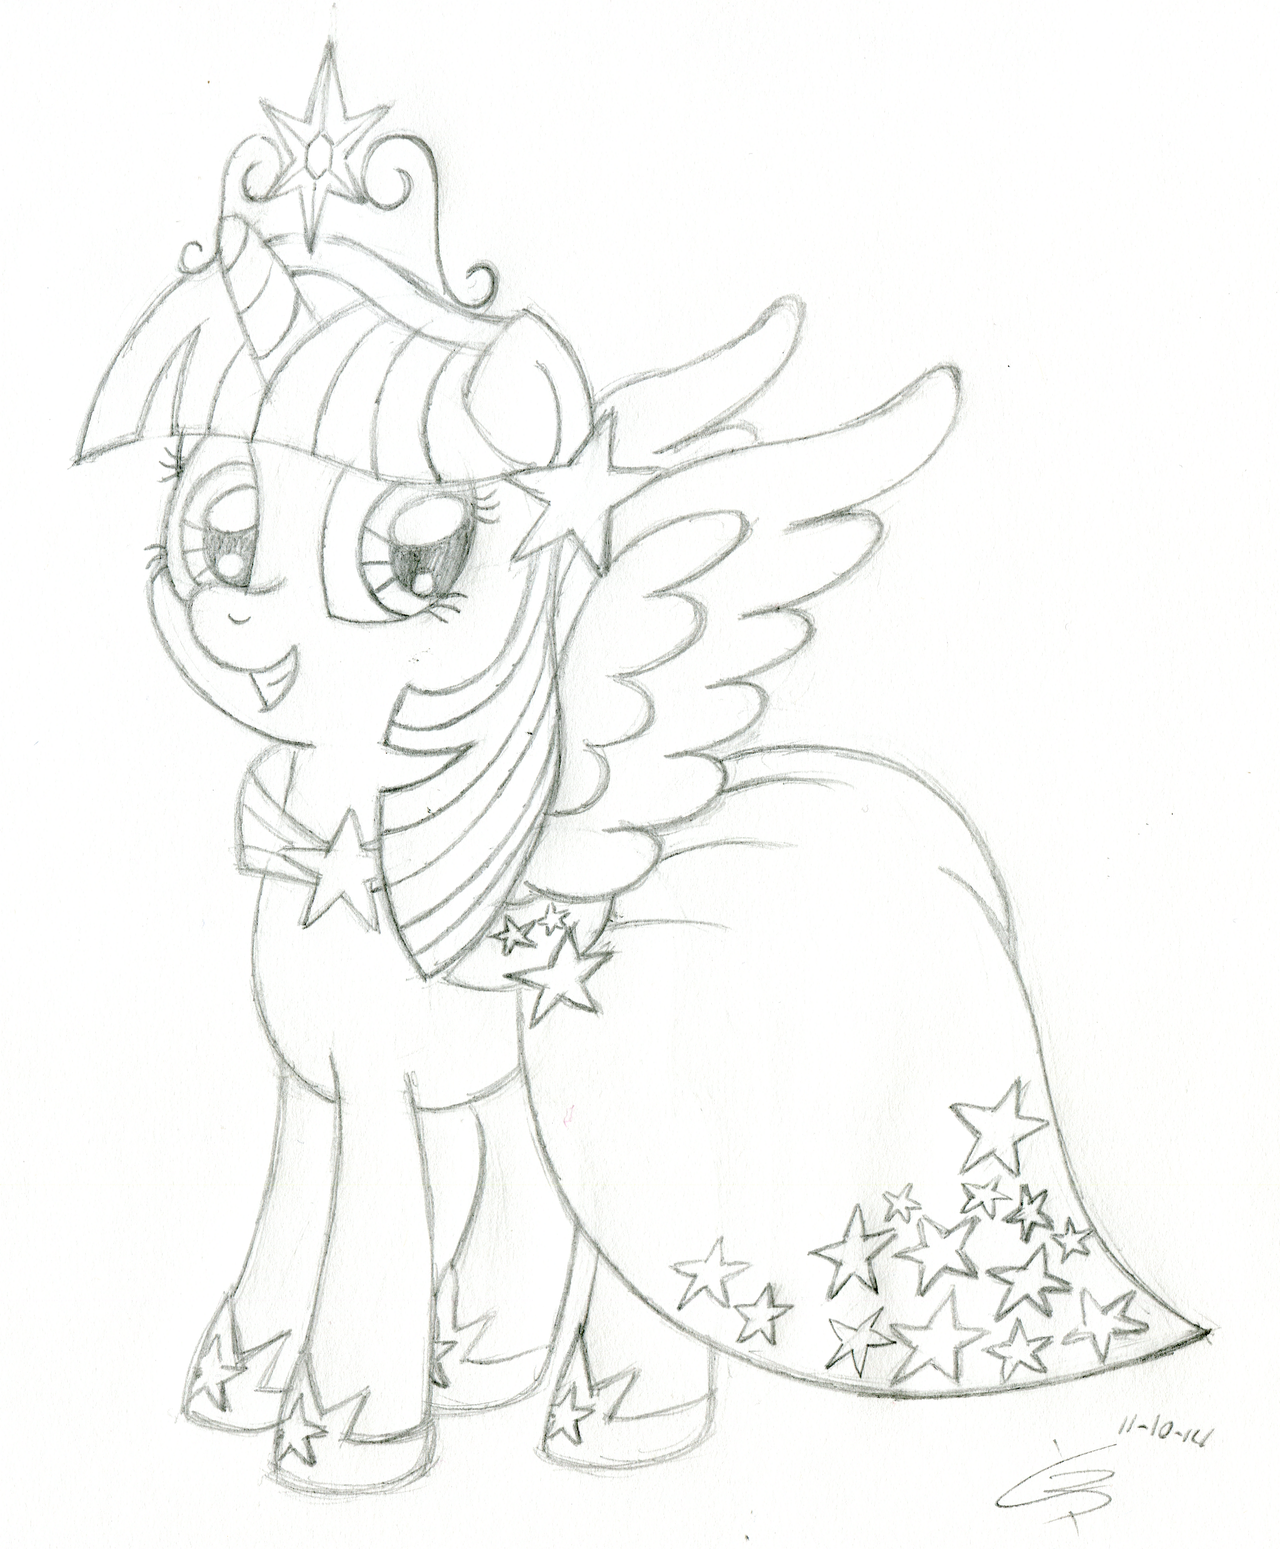 My Little Pony Friendship Is Magic Free Printables additionally Elsa 4 1 Vw as well Mayor mare together with Mirarinkishika deviantart as well My Little Pony Friendship Is Magic Coloring Pages To Print 624x482printable 5. on princess twilight sparkle part 2